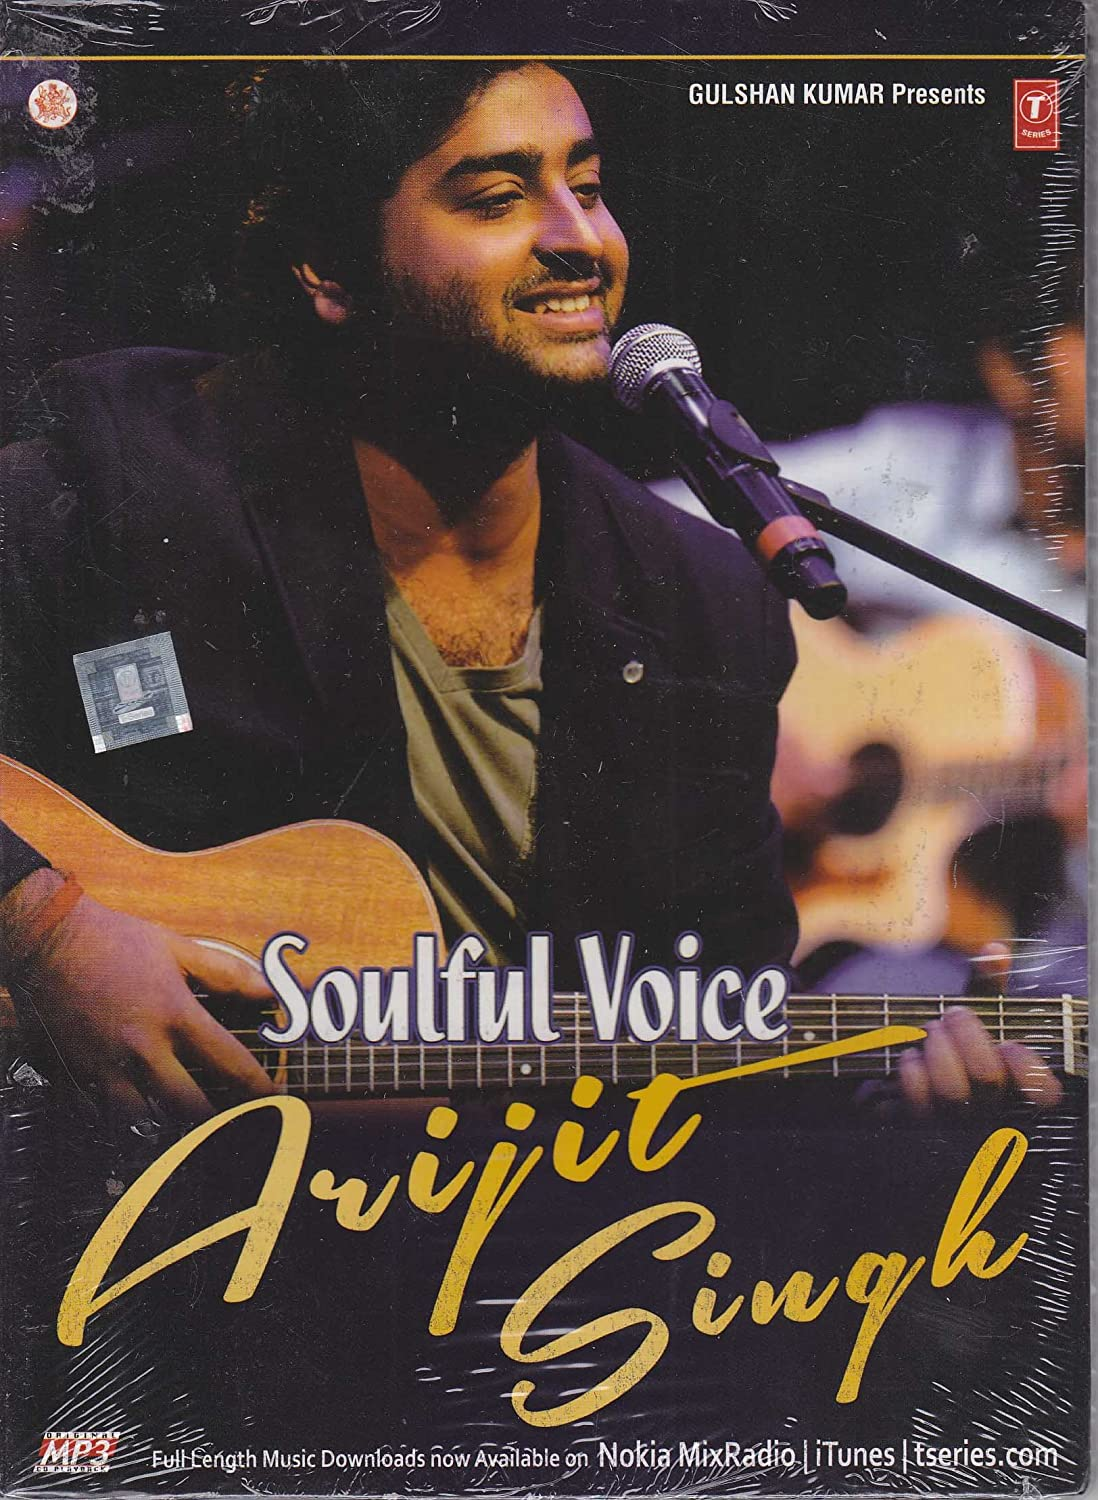 Soulful Voice Arijit Singh Songs Mp3 2014 Indian Bollywood Hindi Latest Songs Amazon Com Music Последние твиты от arijit singh ™ (@arijit__singh). soulful voice arijit singh songs mp3 2014 indian bollywood hindi latest songs